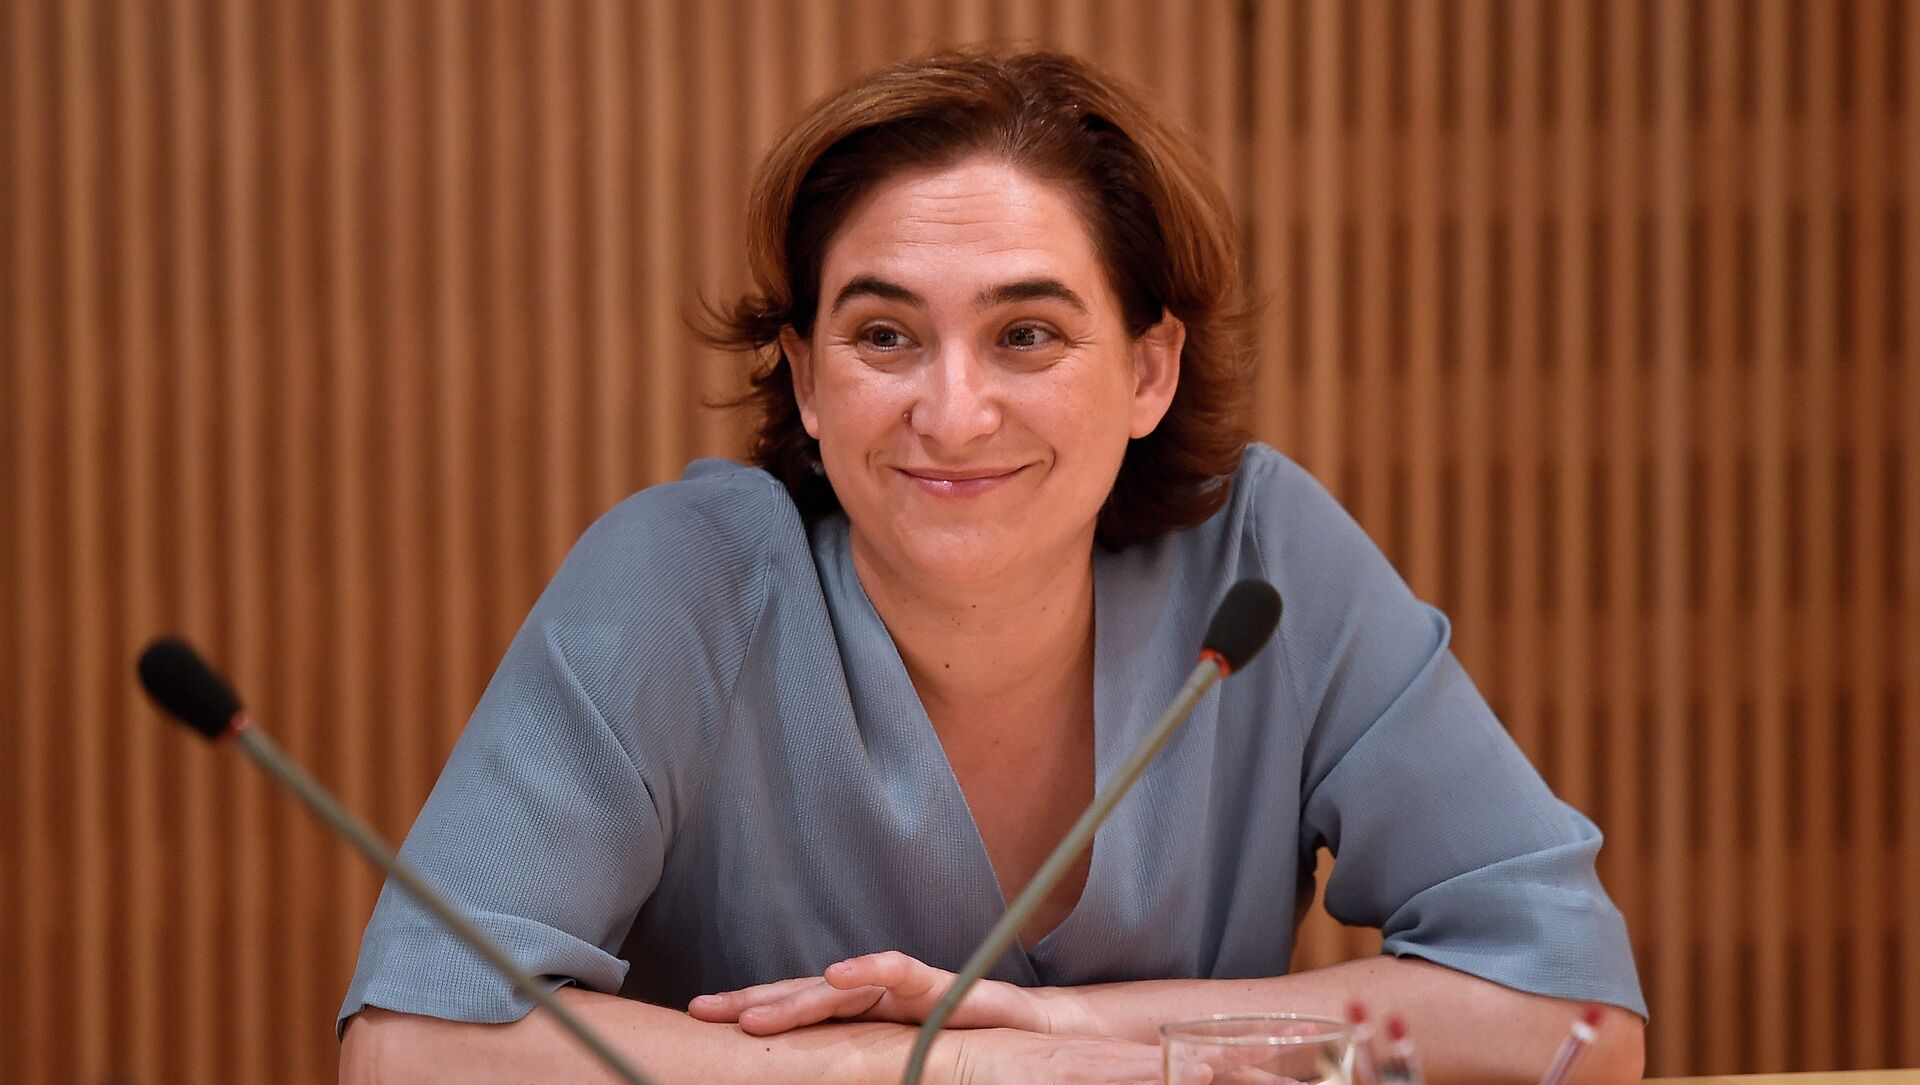 The new mayor of Barcelona Ada Colau smiles as she chairs the first meeting of the government commission at the Barcelona's city hall on June 17, 2015. - Sputnik Mundo, 1920, 04.02.2021